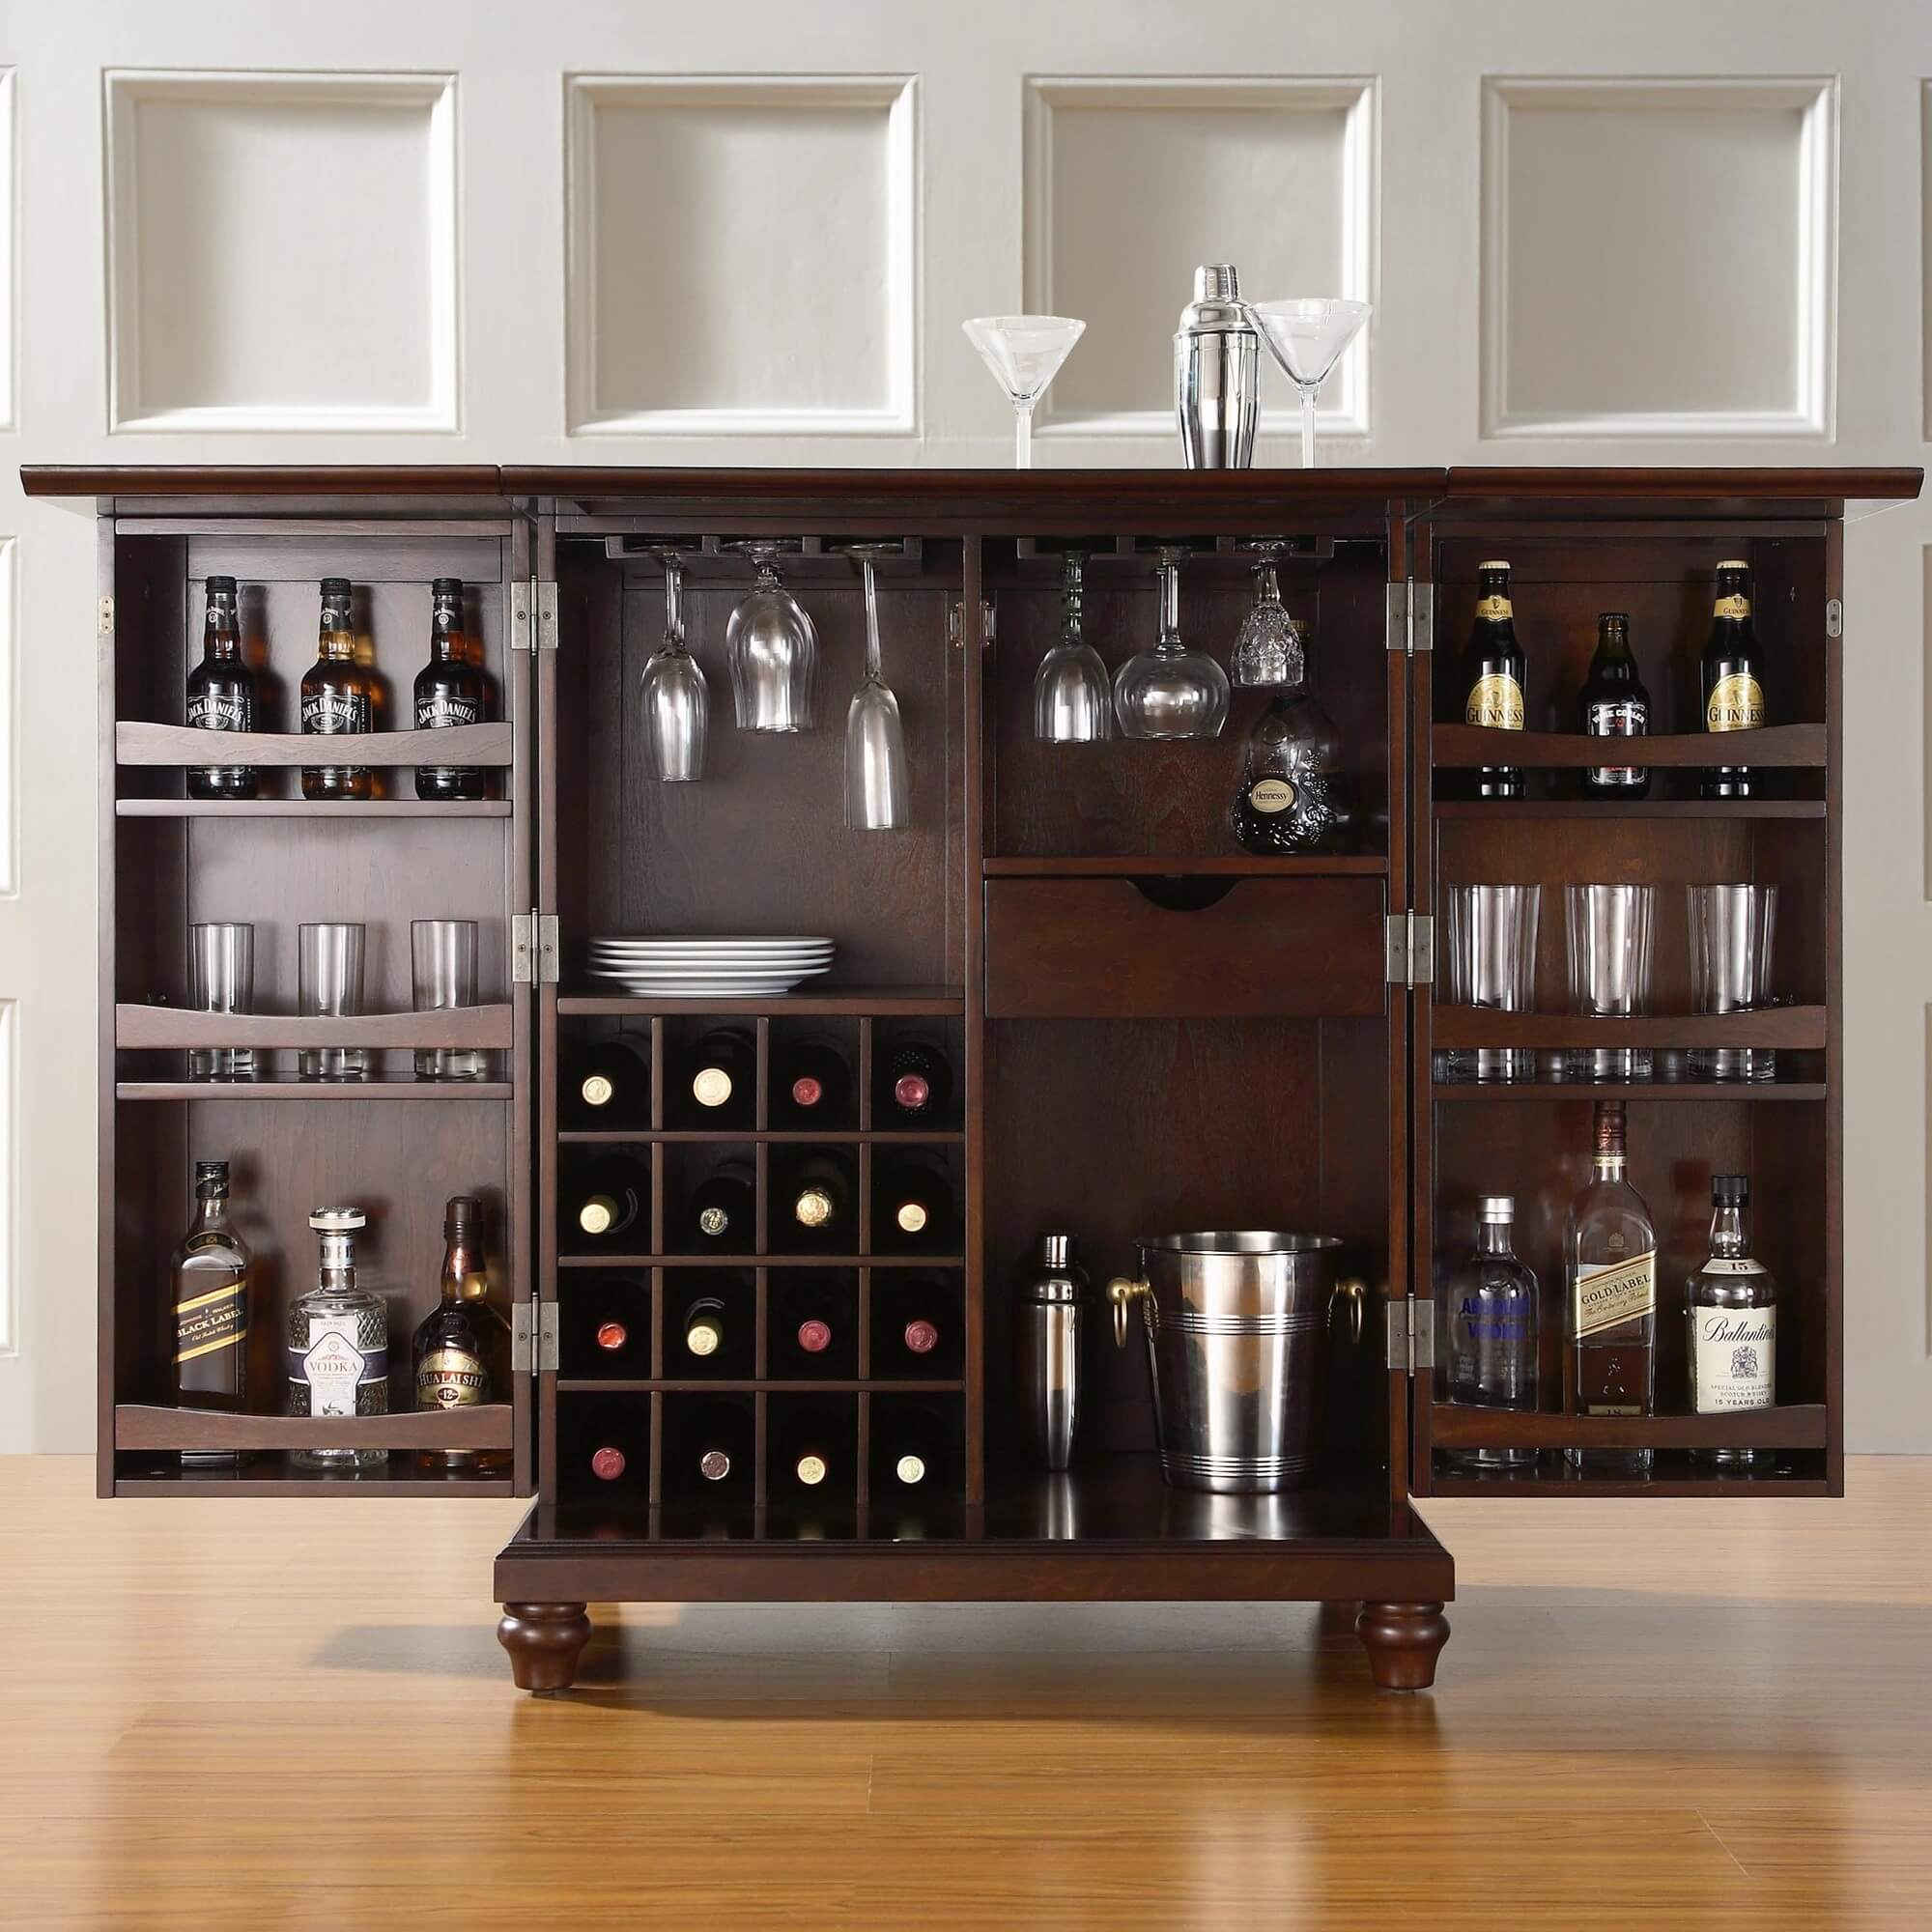 Top Home Bar Cabinets Sets  Wine Bars ELEGANT  FUN - Small home bar designs